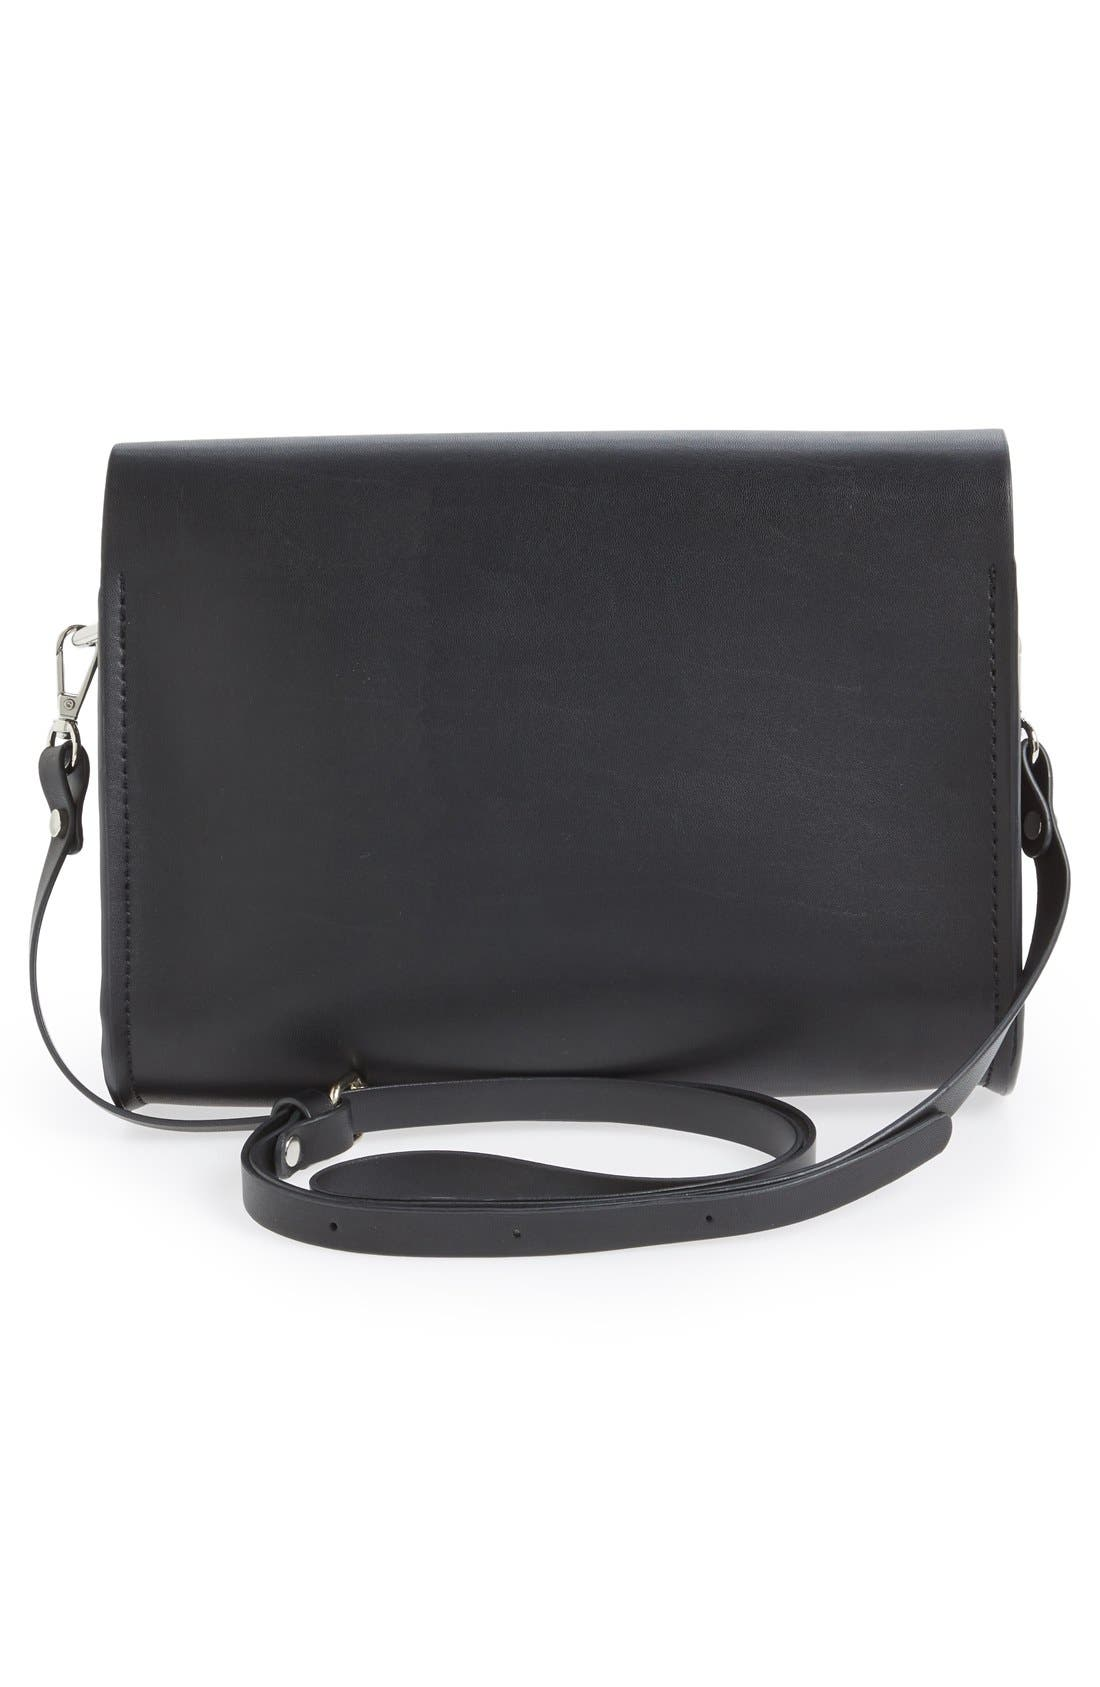 CESCA,                             Faux Leather Crossbody Bag,                             Alternate thumbnail 3, color,                             001